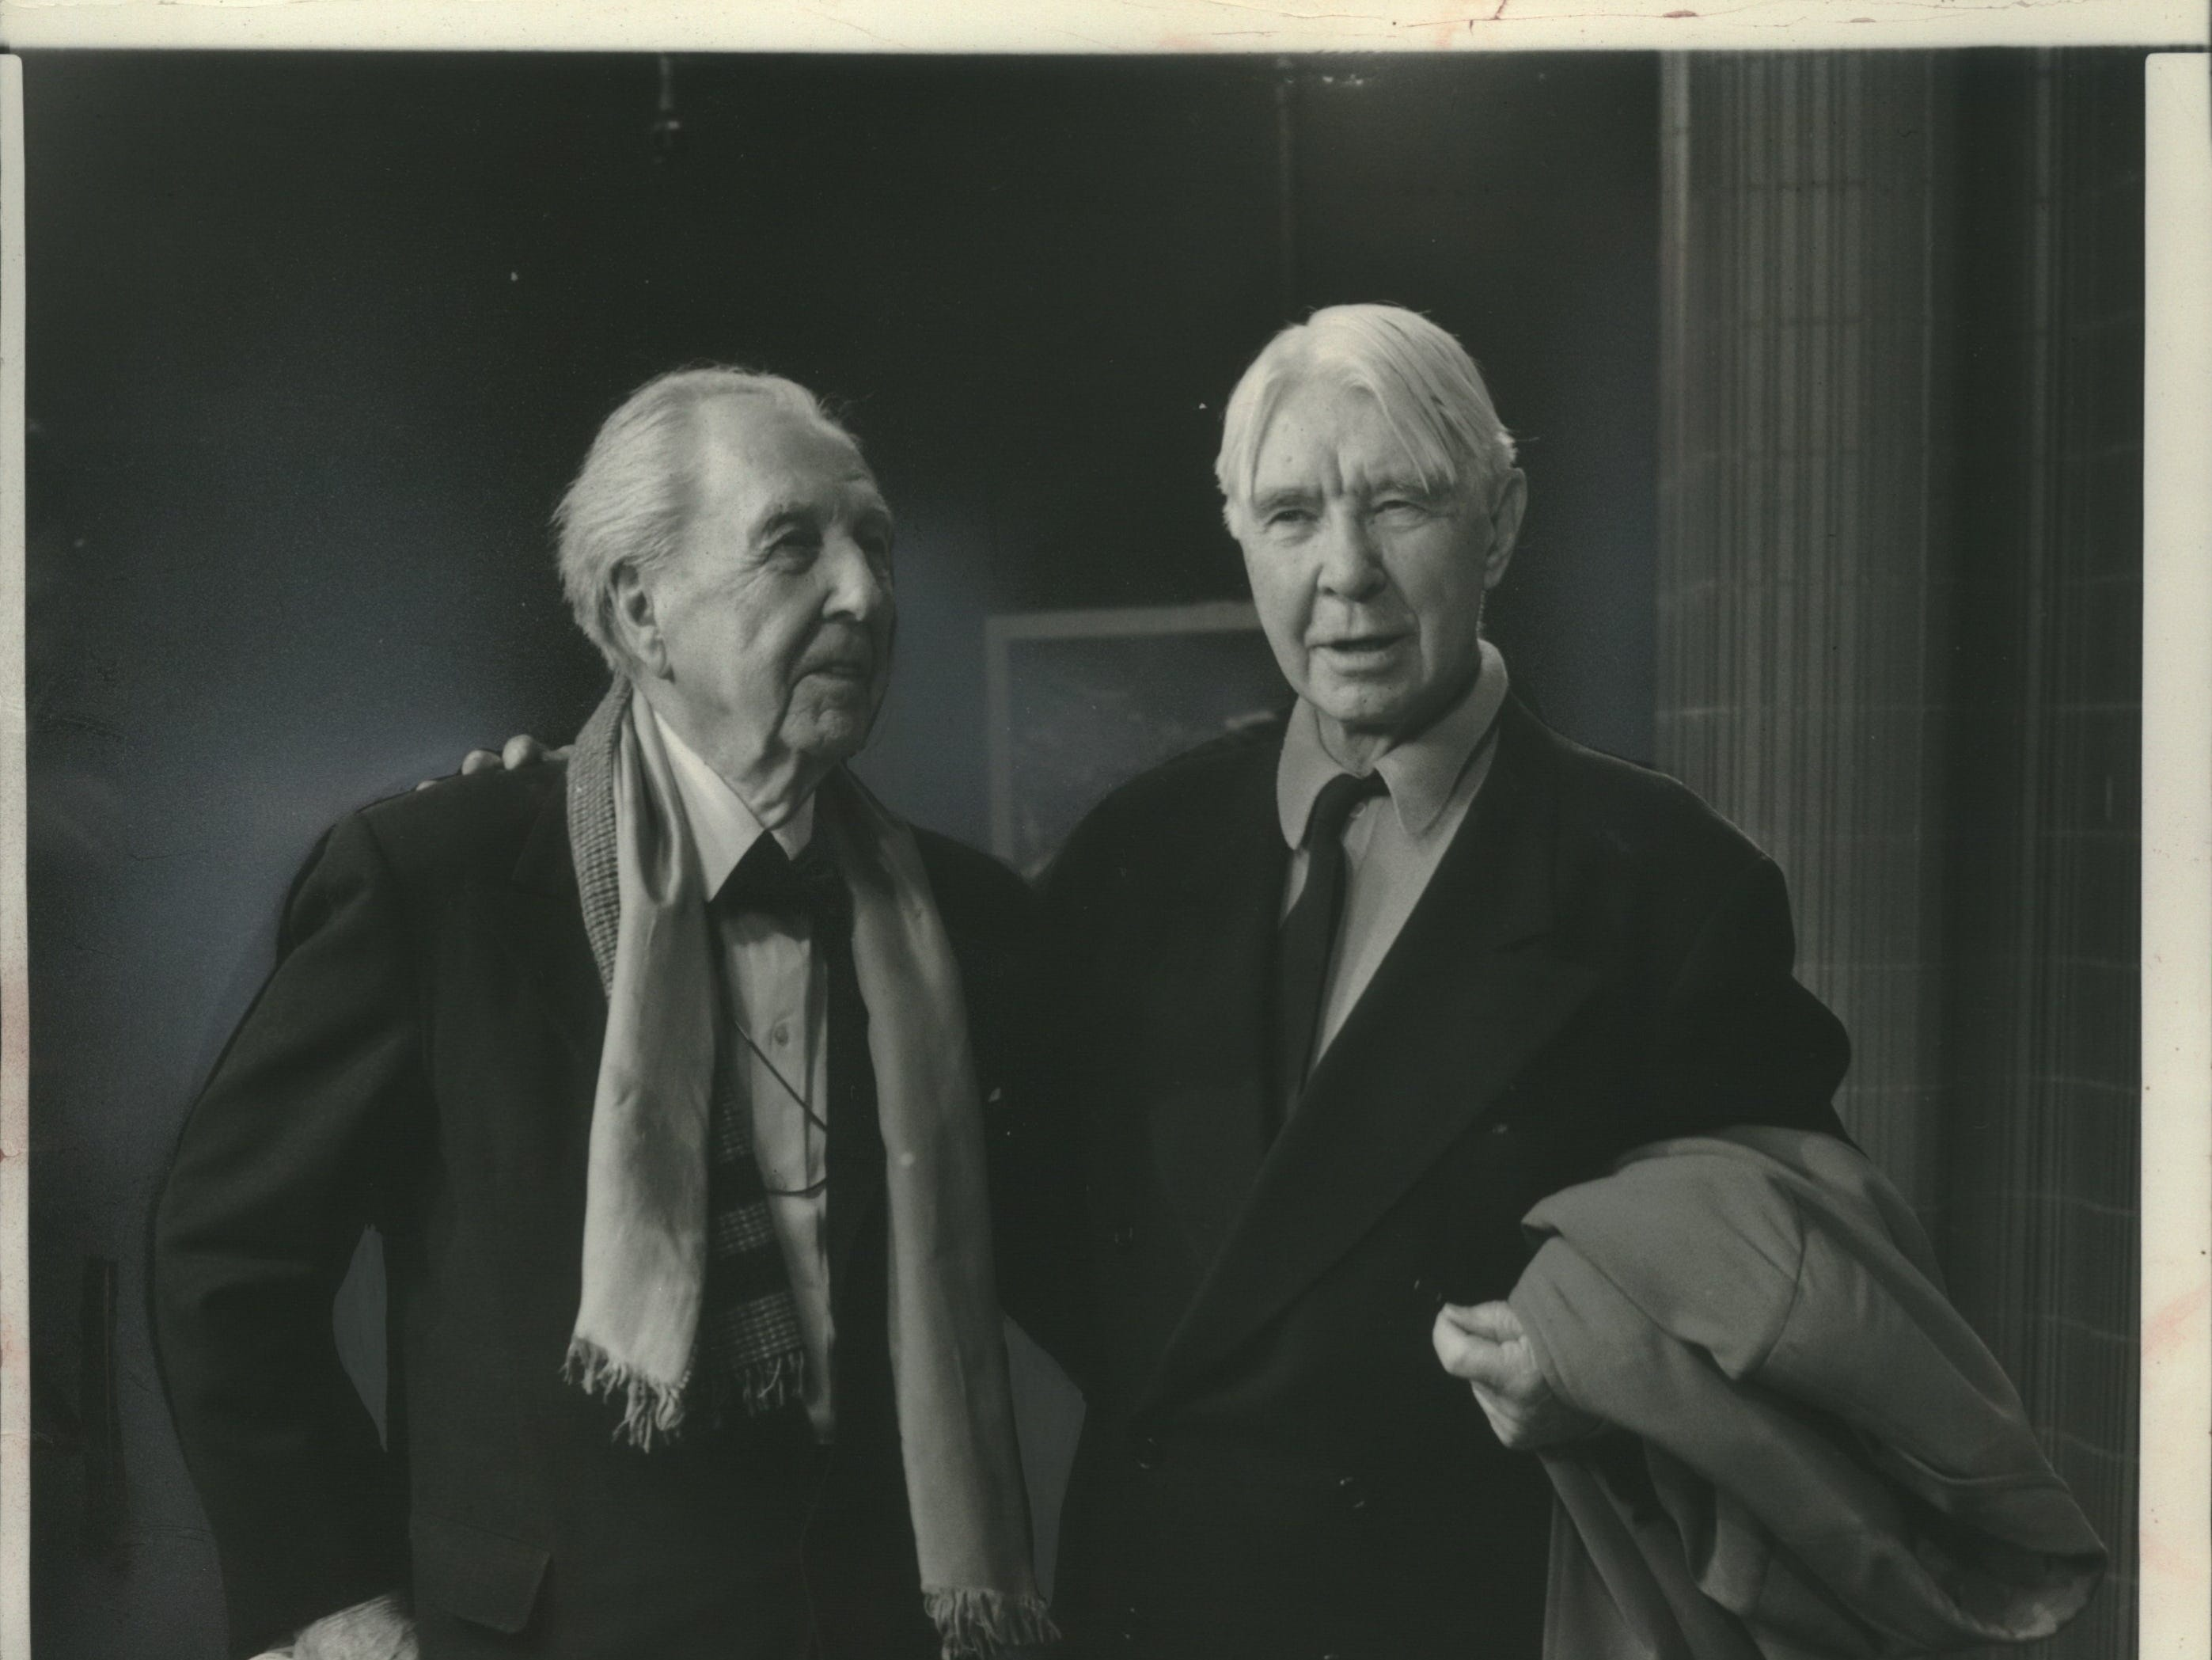 1957: Architect Frank Lloyd Wright (left) and poet Carl Sandburg appeared together on a television show in Chicago.